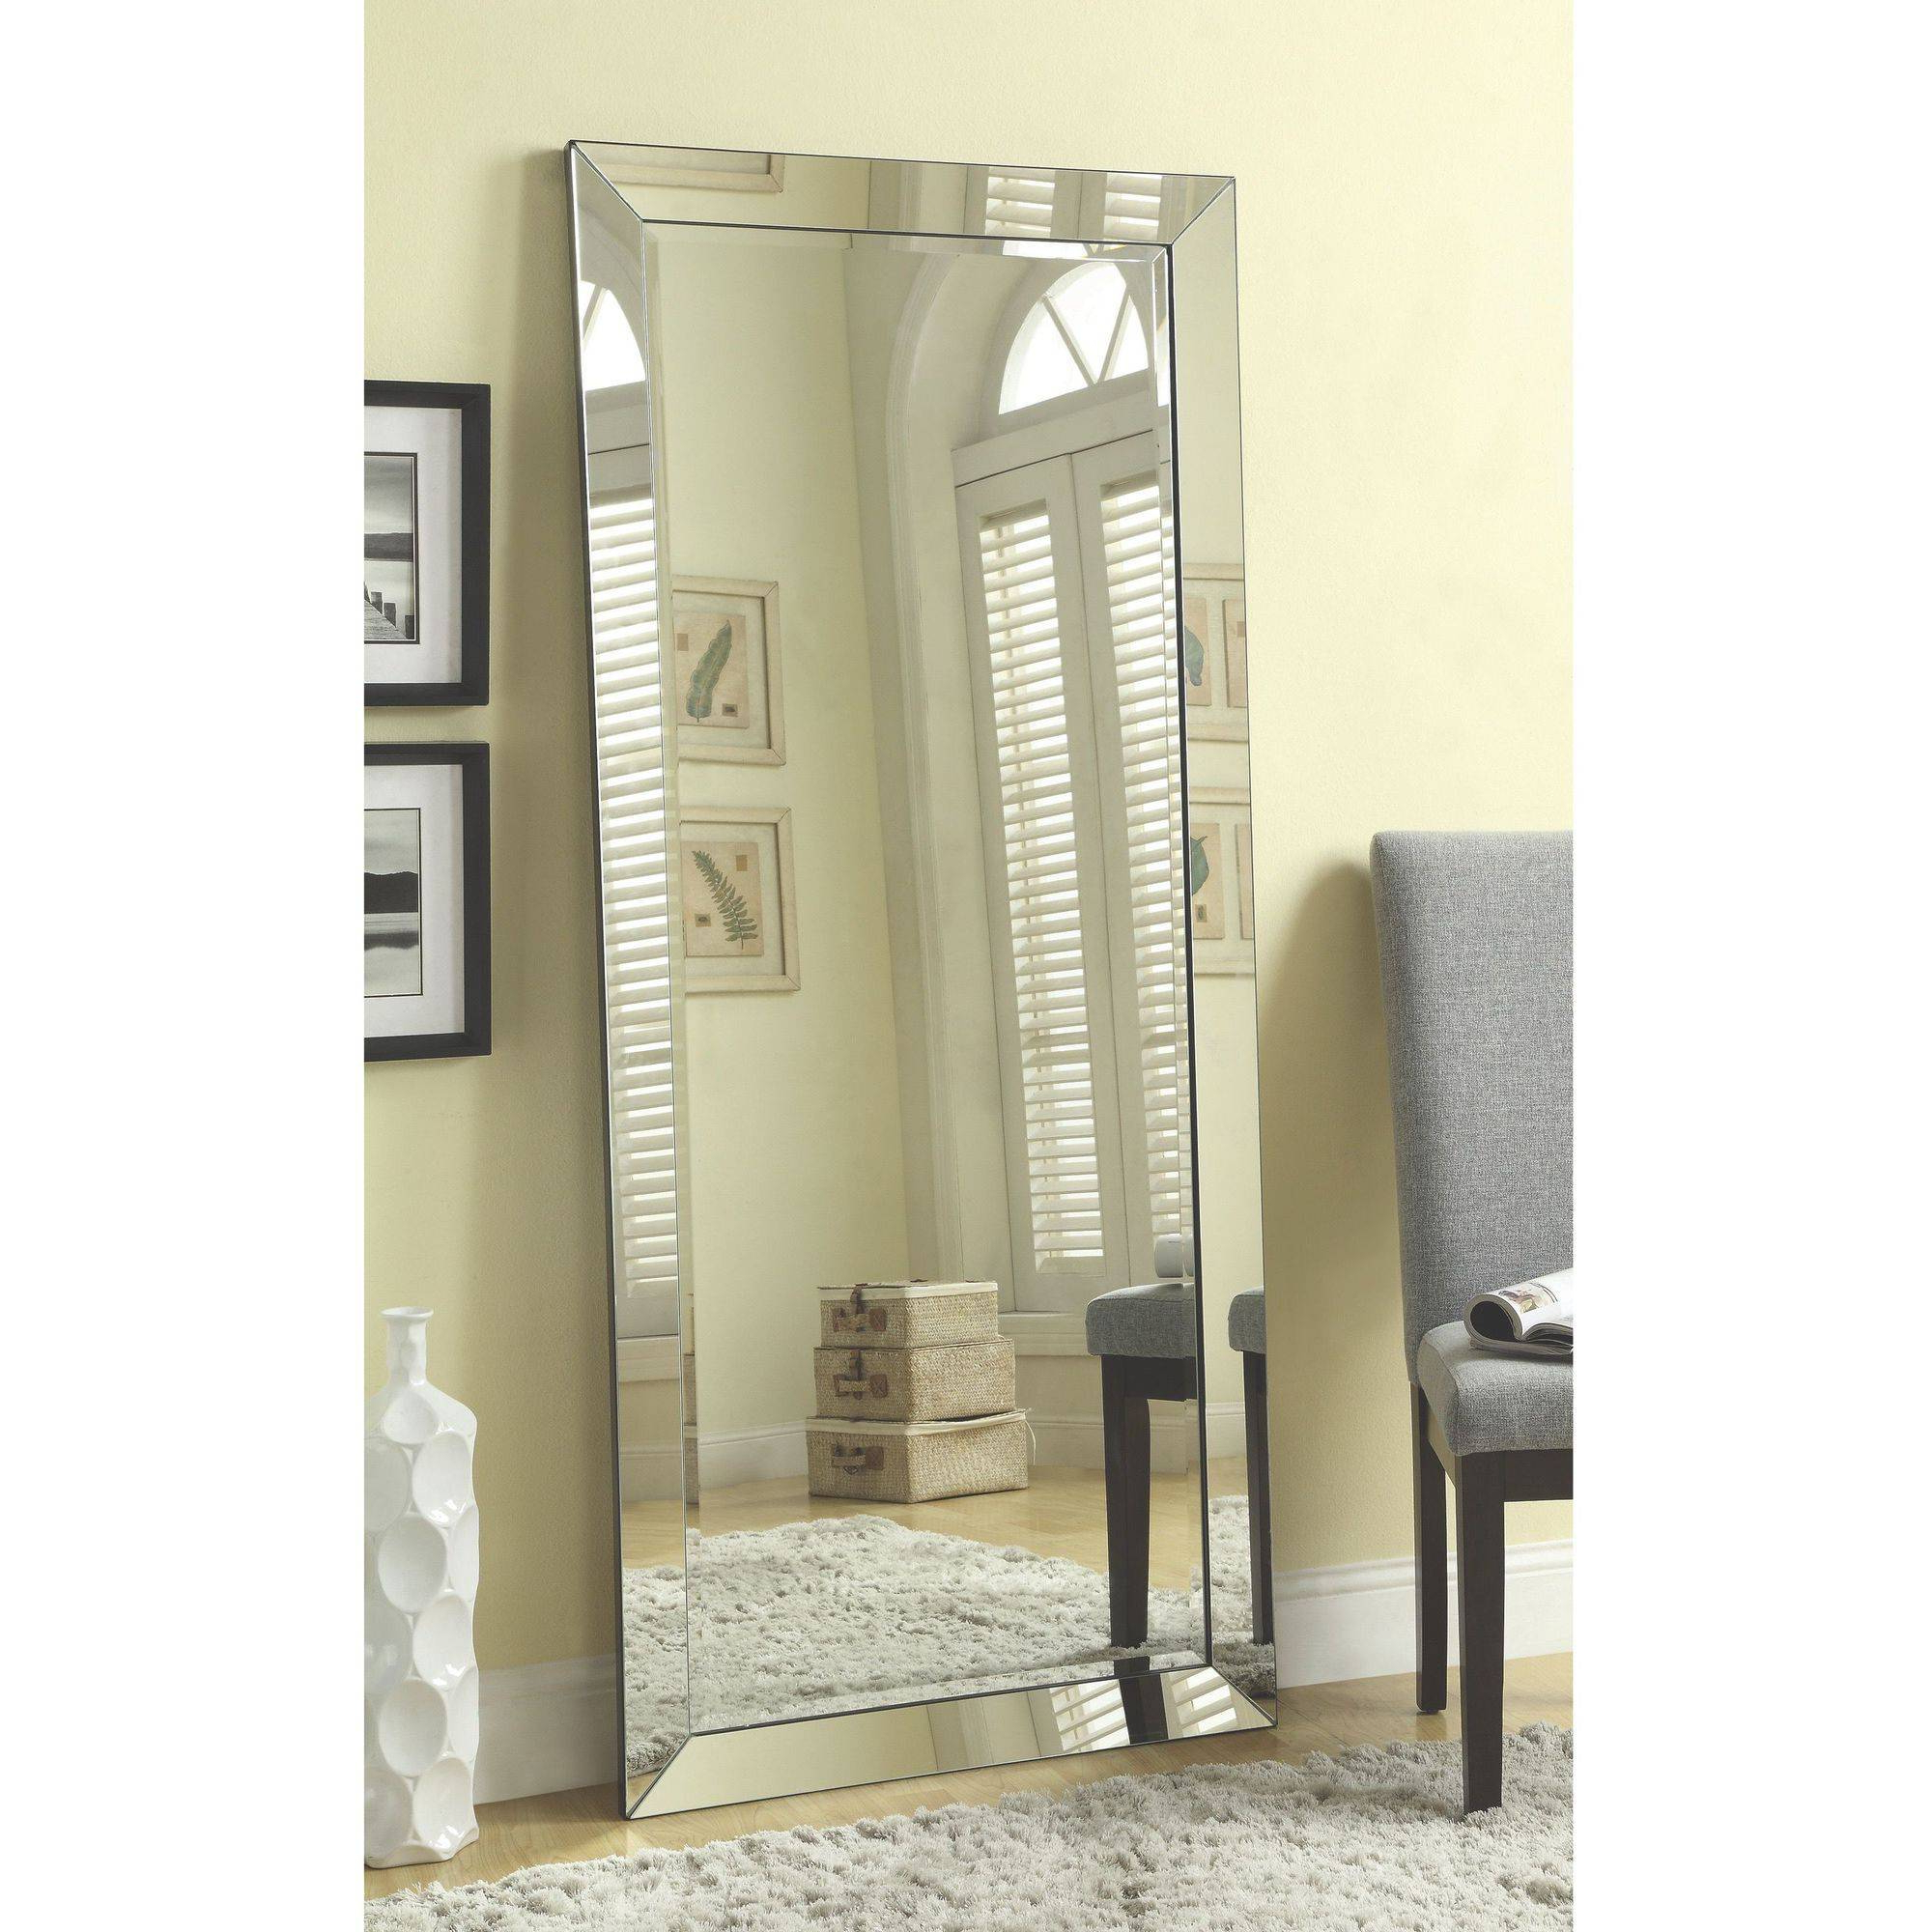 Widely Used 34 Most Unbeatable Long Wall Mirrors Mirror No Frame Large With Frameless Large Wall Mirrors (View 9 of 20)